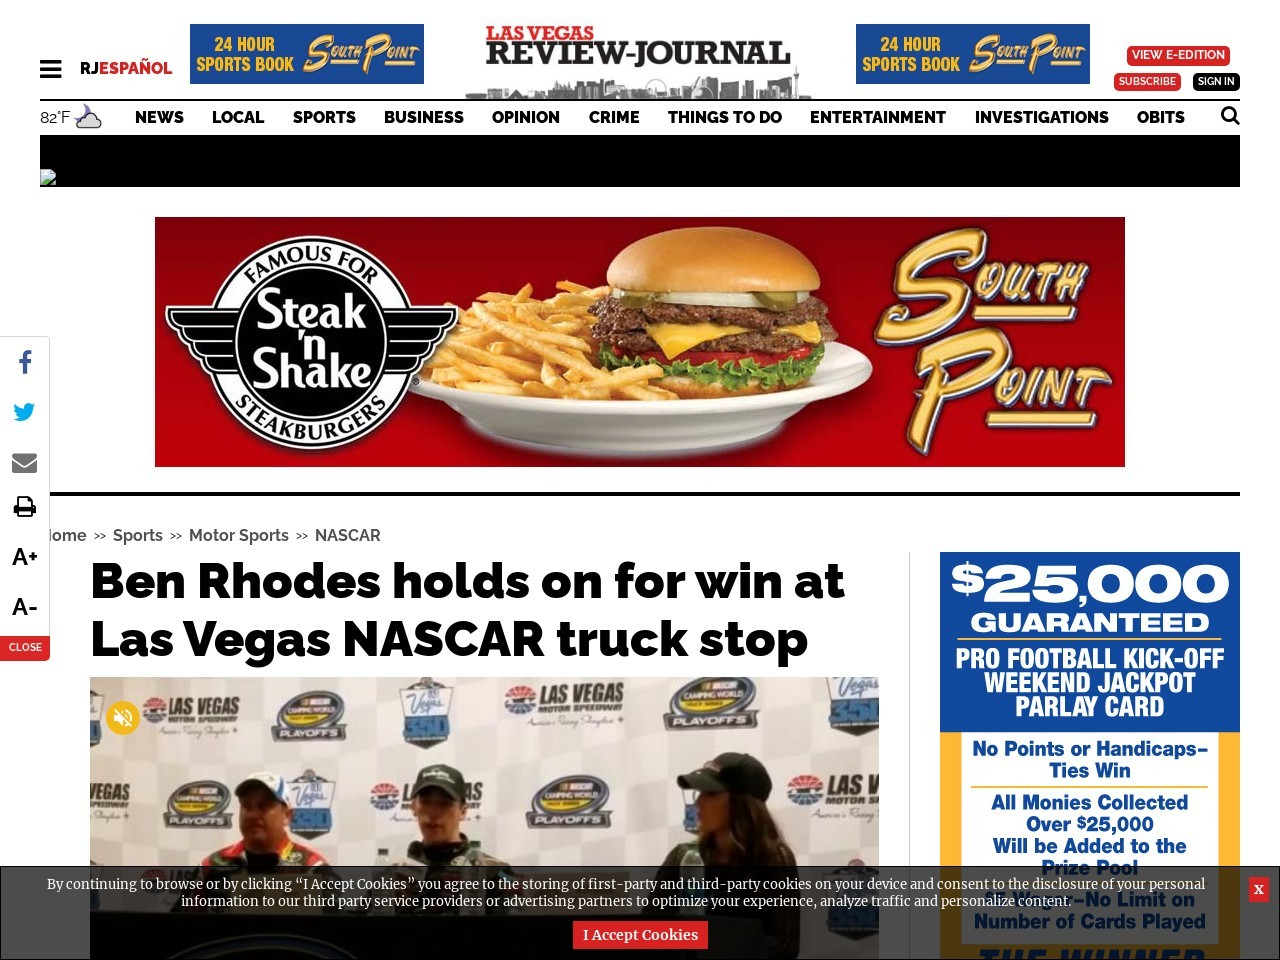 Ben Rhodes holds on for win at Las Vegas NASCAR truck stop